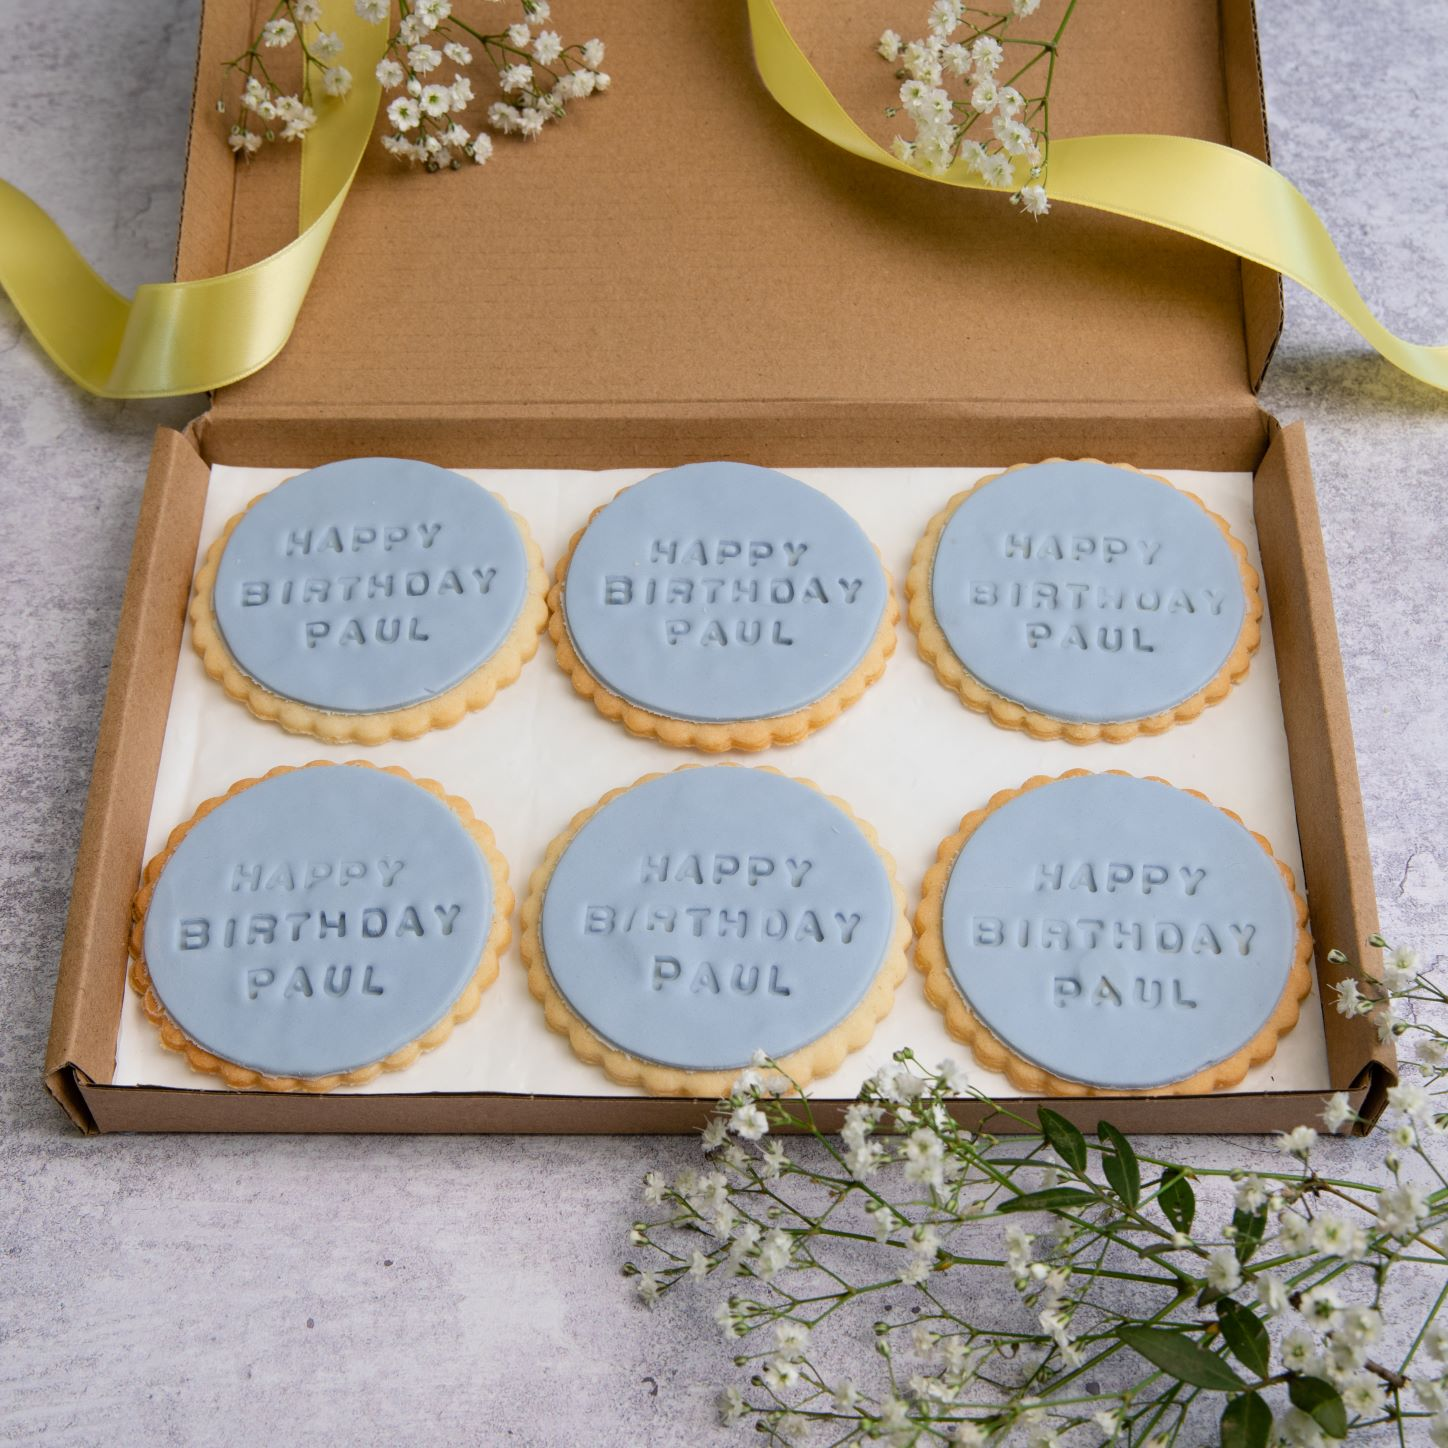 iced birthday biscuits in letterbox friendly packaging